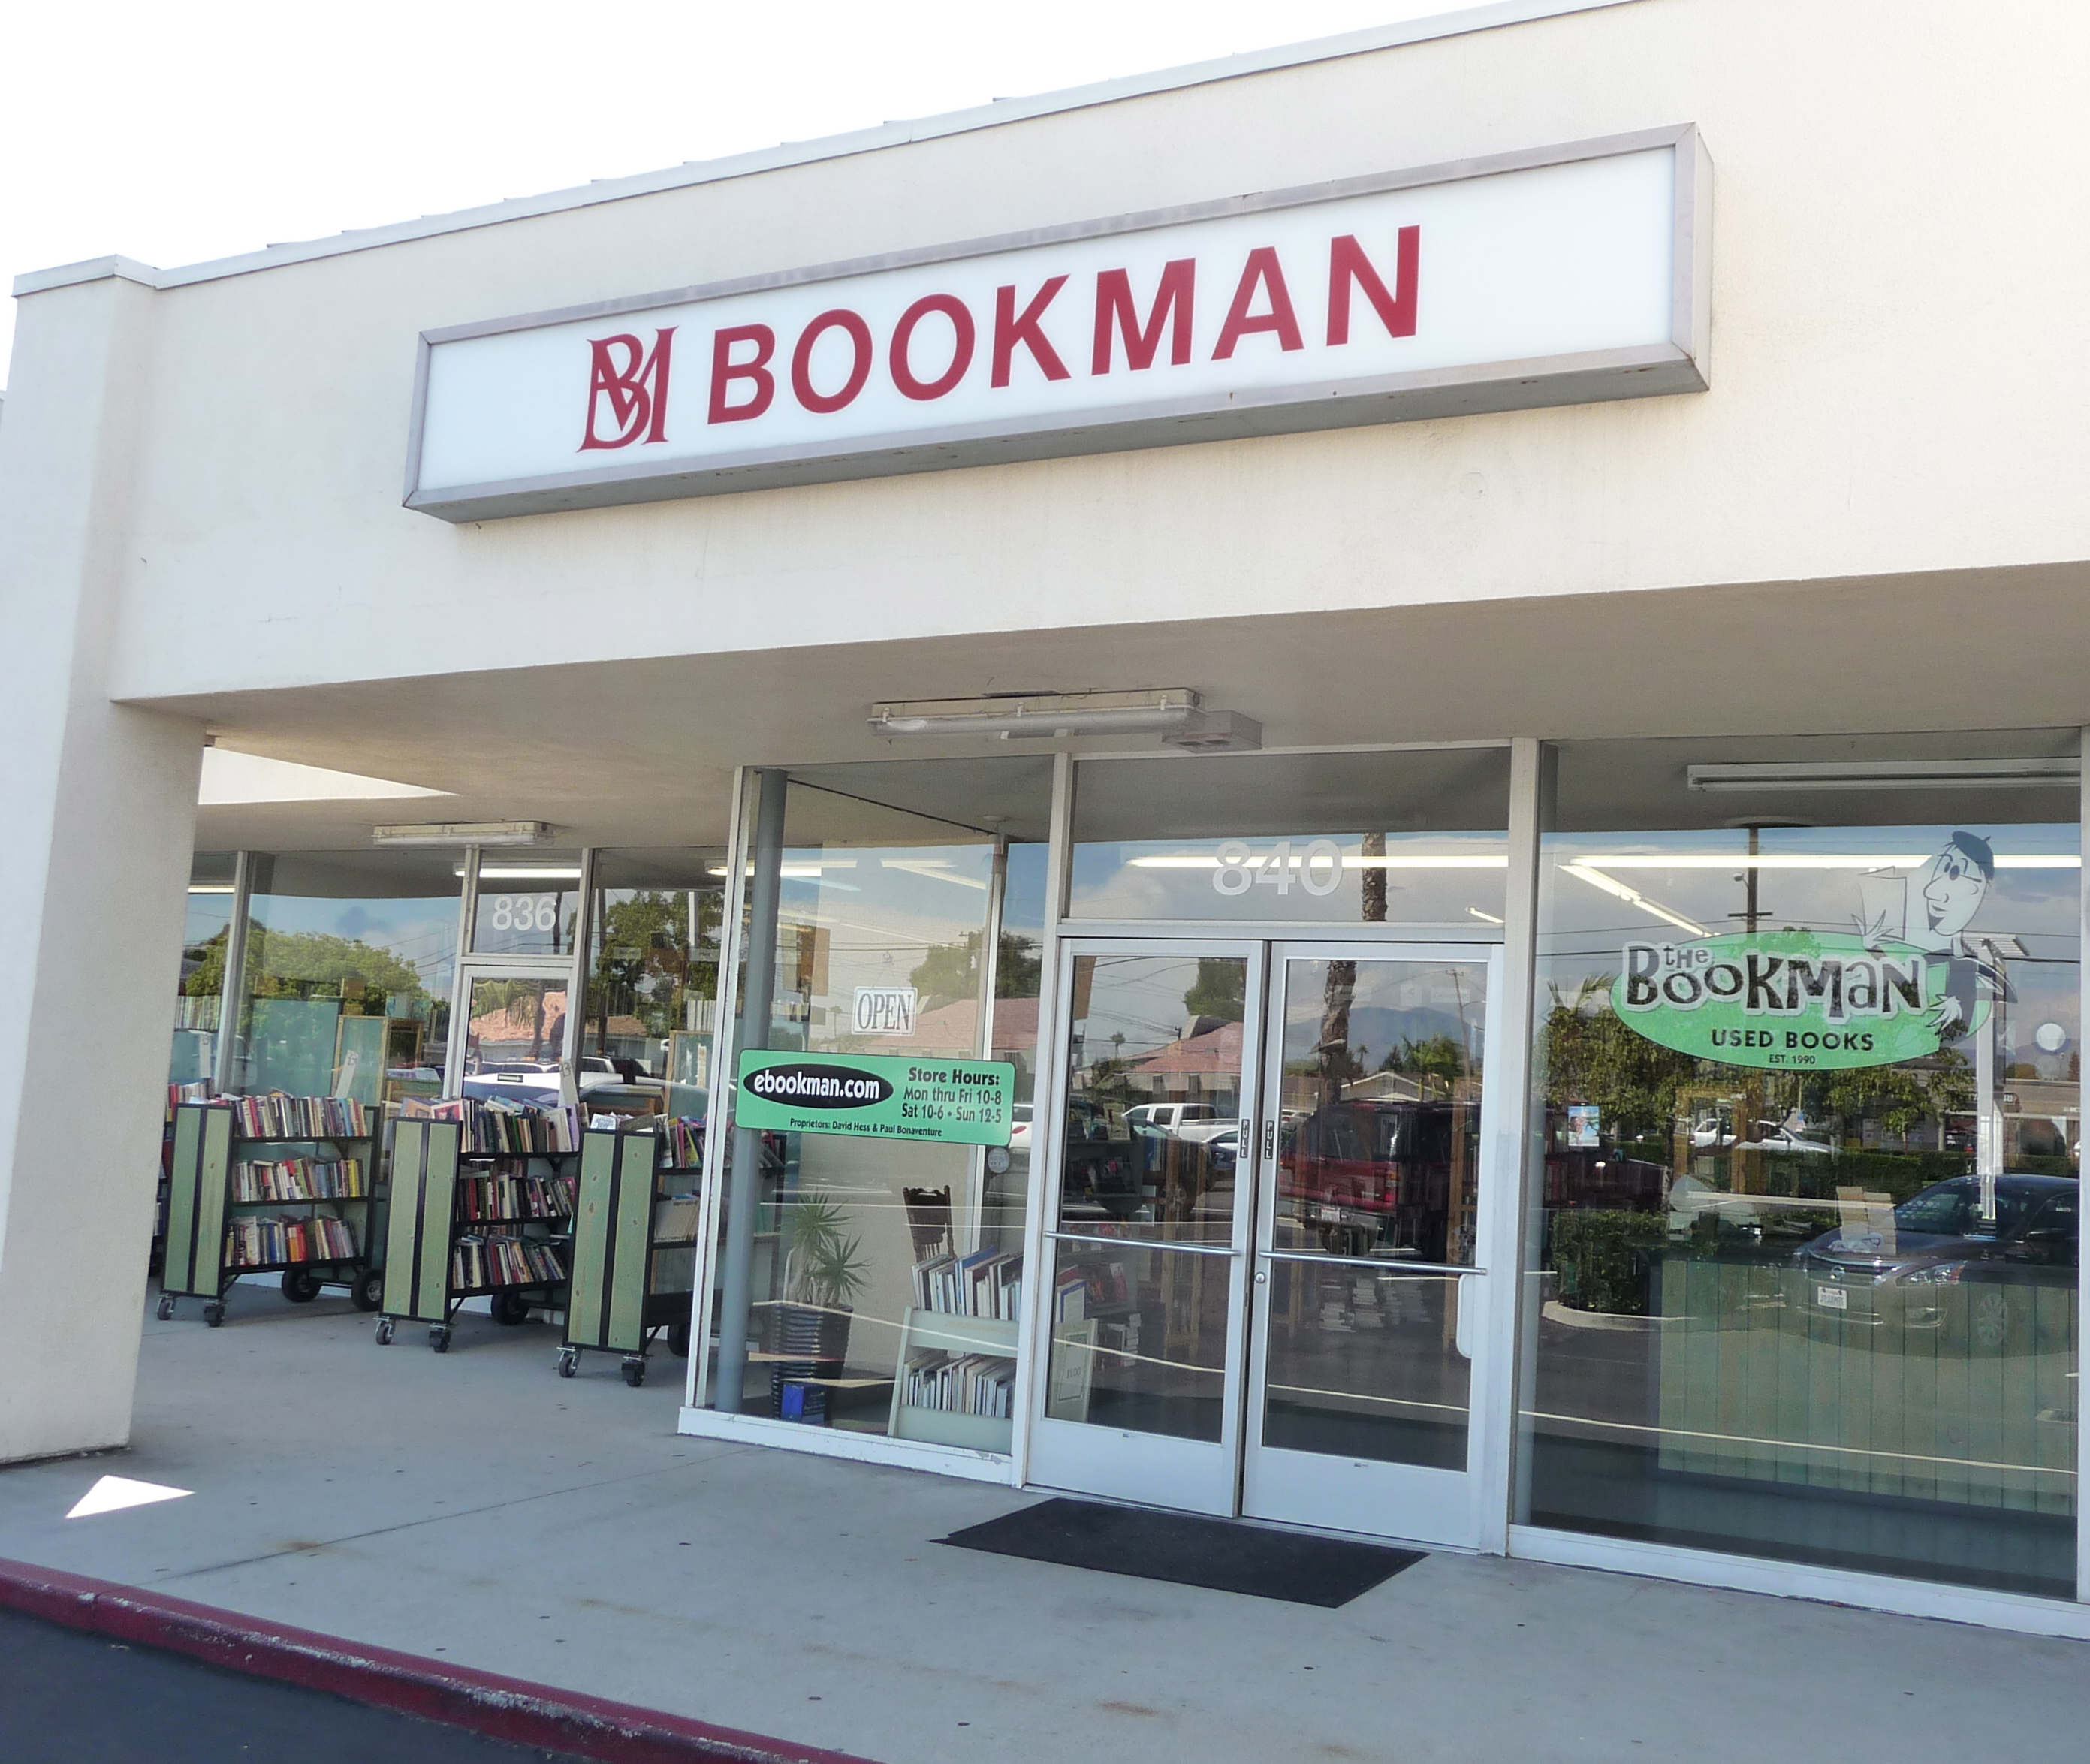 Vanishing America: A Great, General Used Book Store